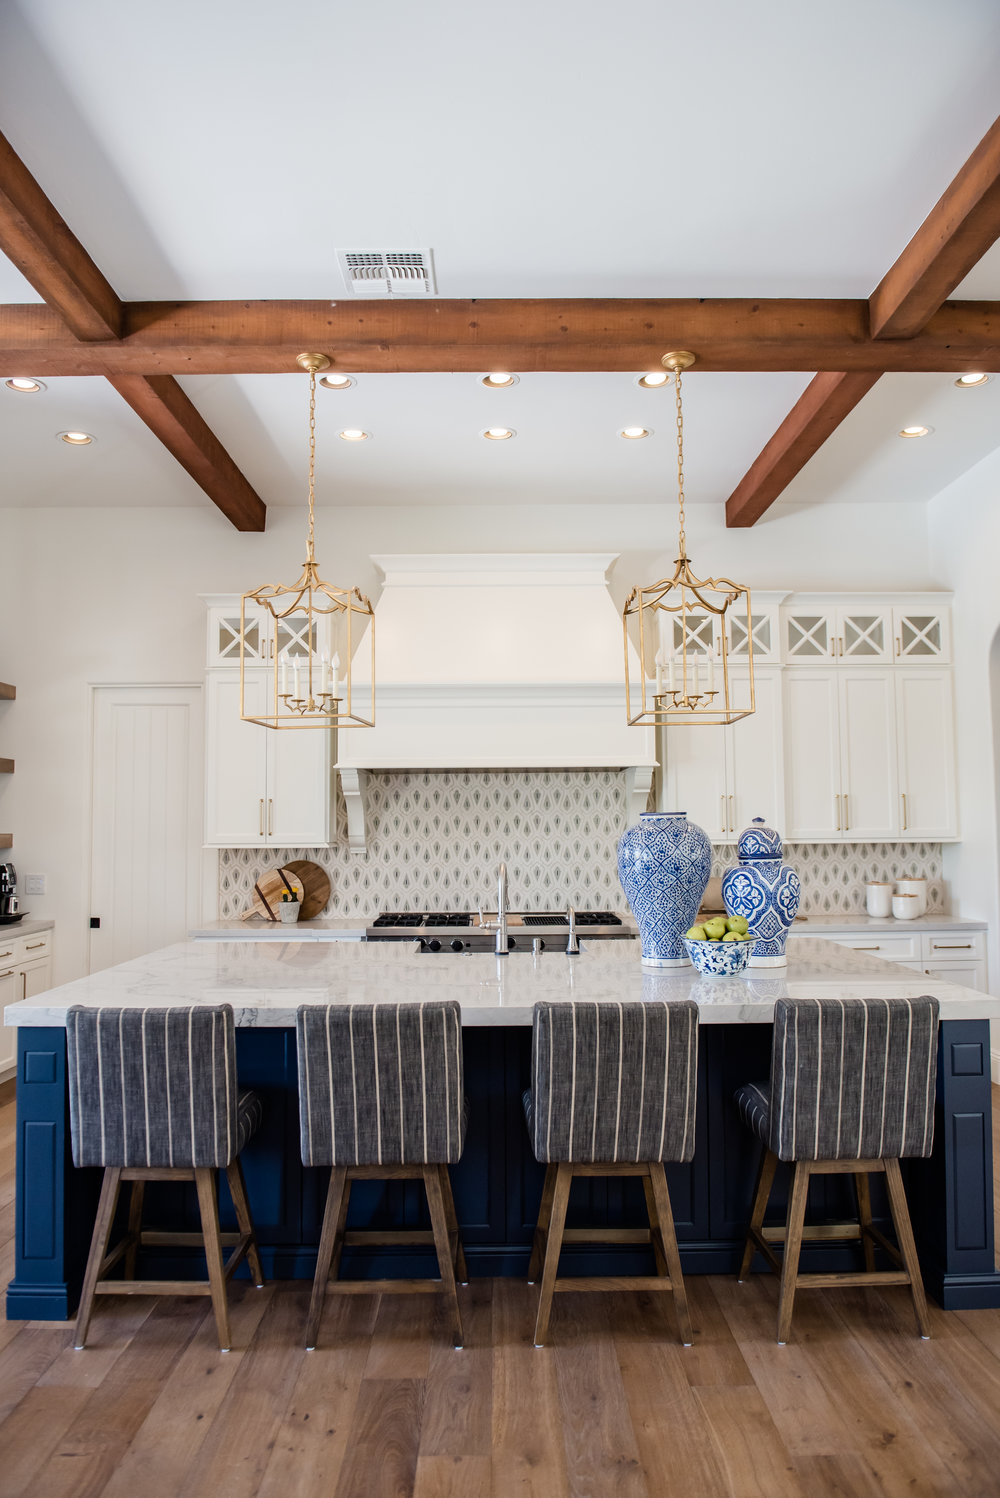 22+SantaBarbara+Beams+StripedStools+Navyblue+White+Accessories.jpg